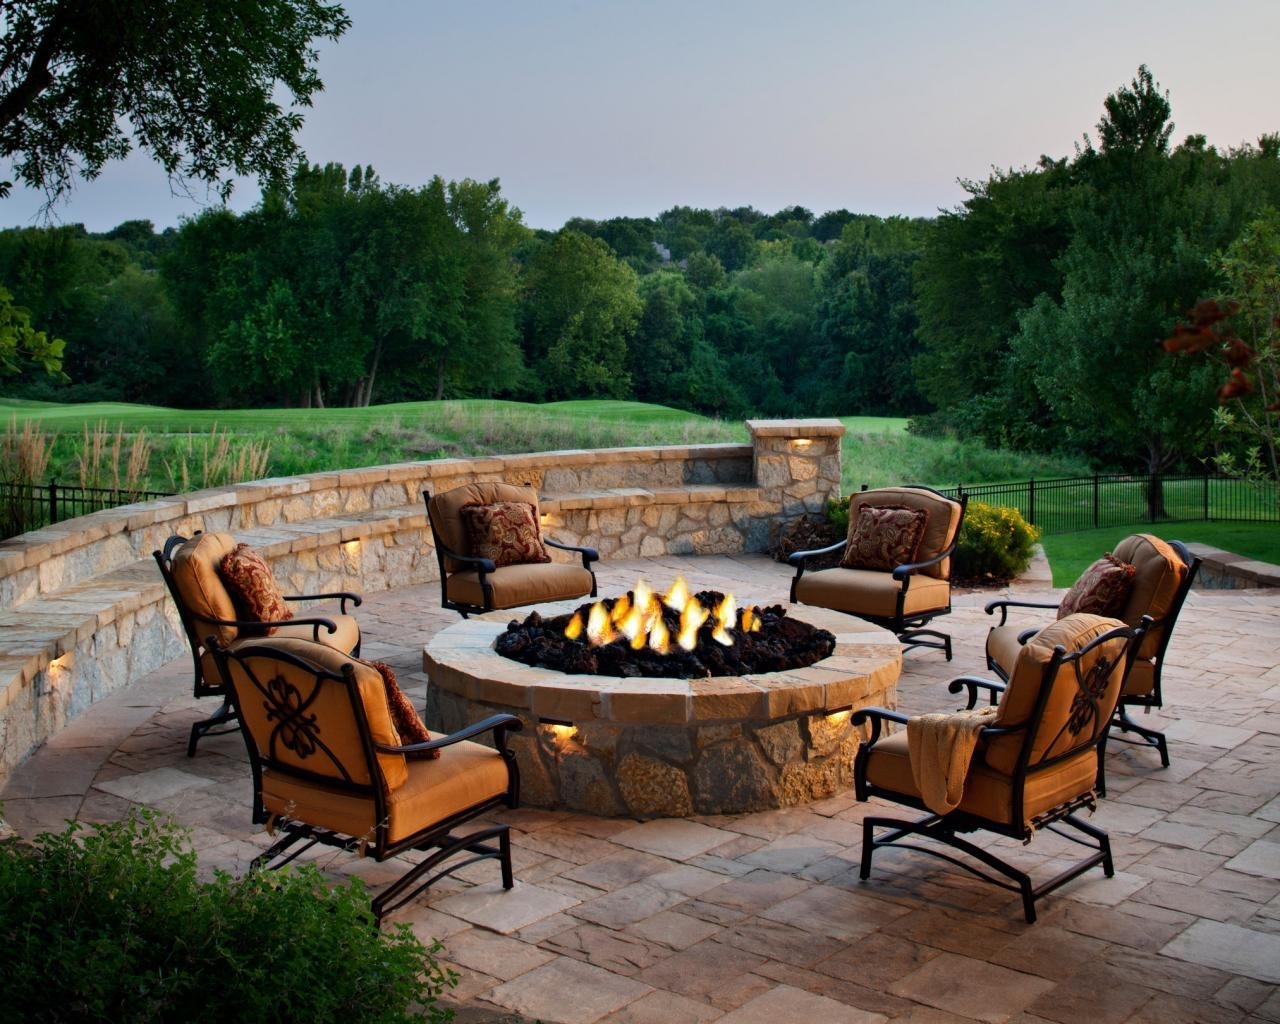 10 Lovely Patio Ideas With Fire Pit %name